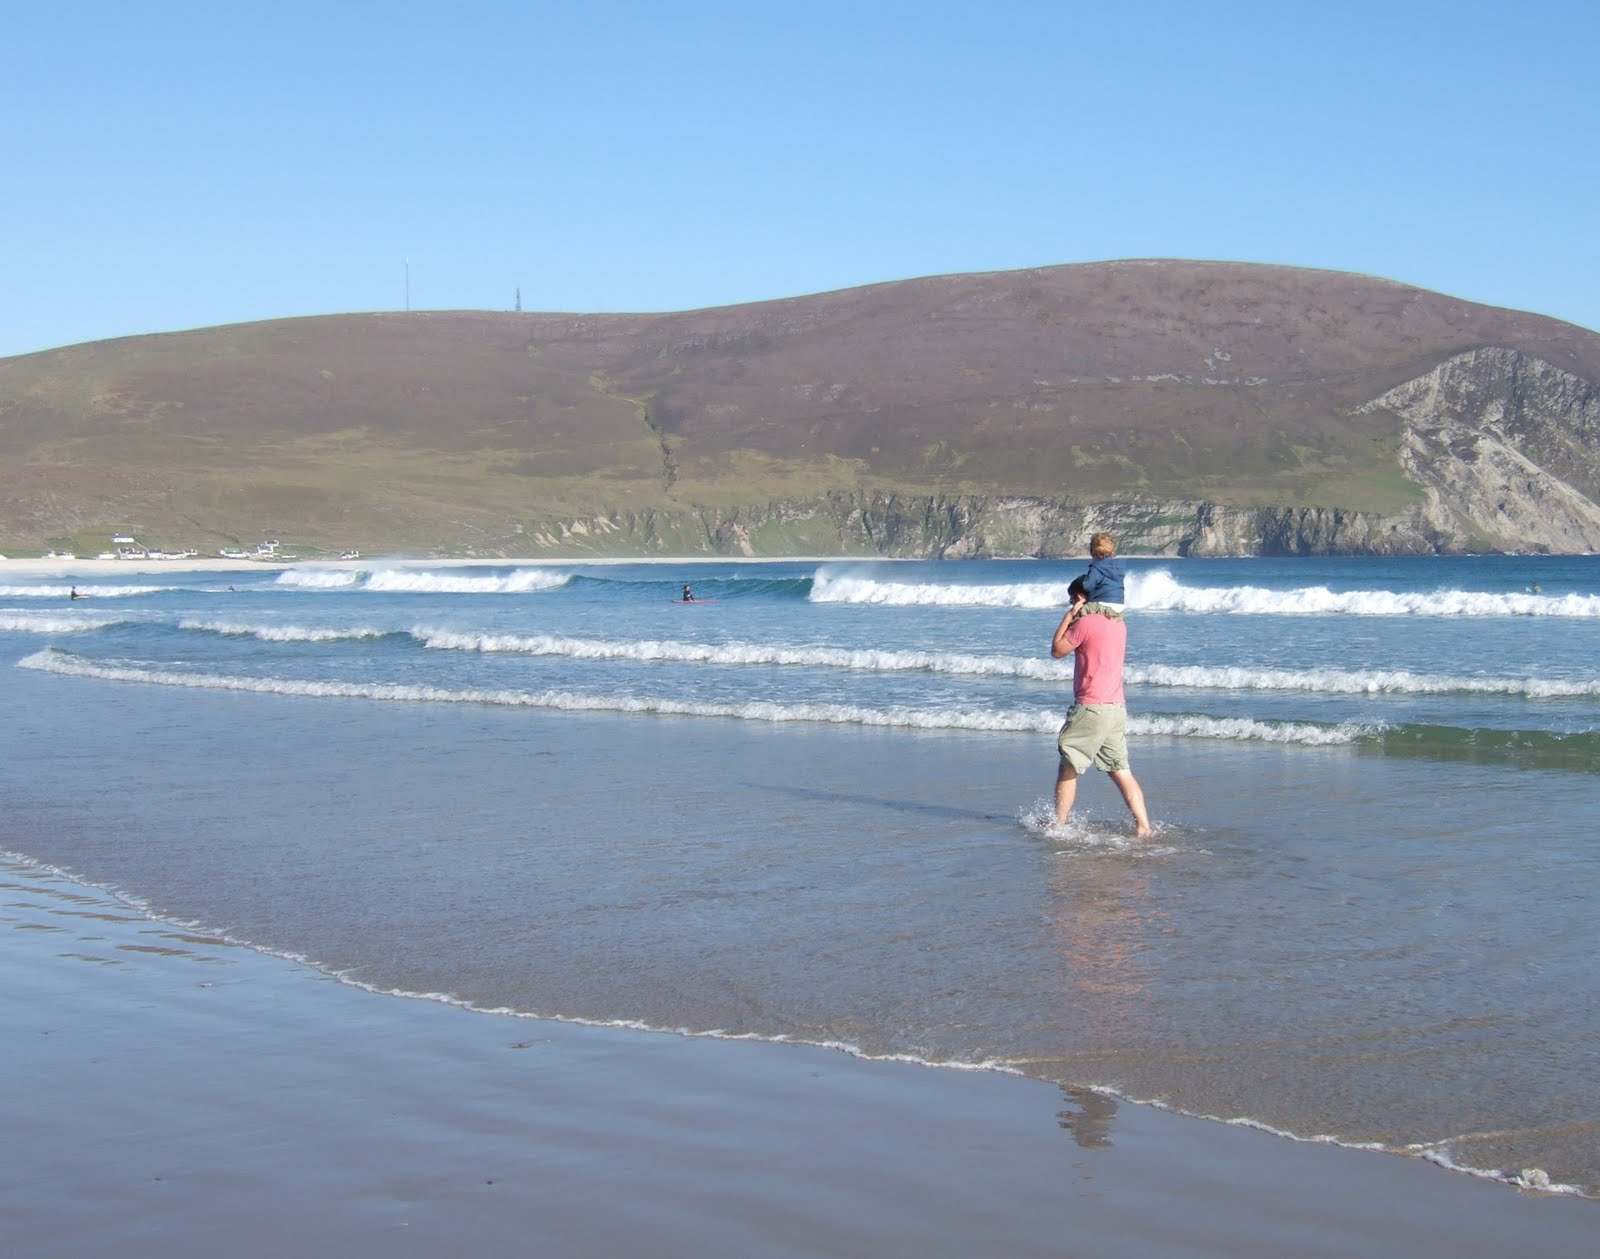 http://image.bestbrains.com/blog/lost-irish-beach/dooagh-beach.JPG